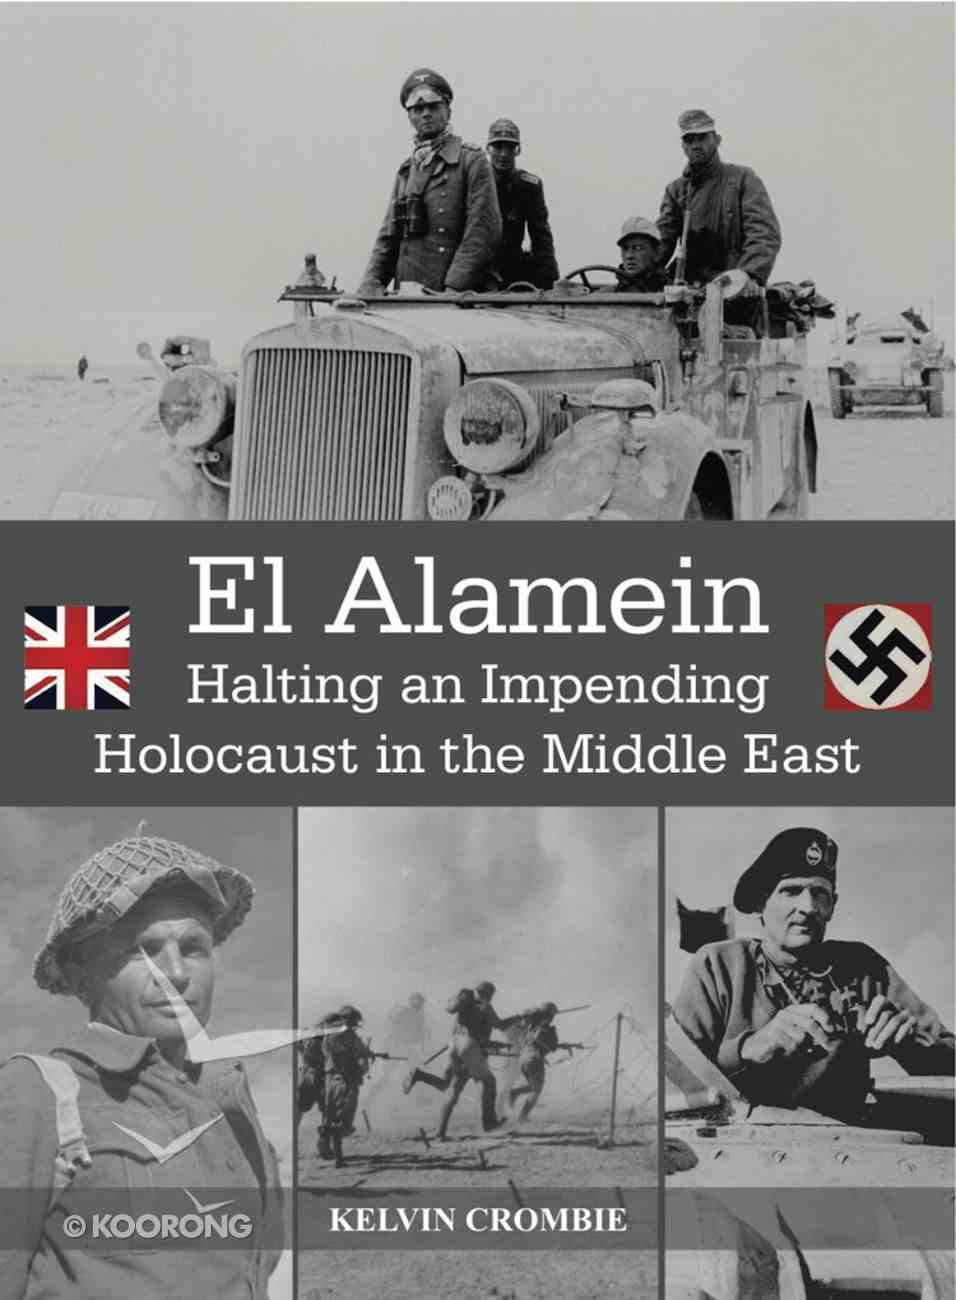 El Alamein: Halting An Impending Holocaust in the Middle East Paperback